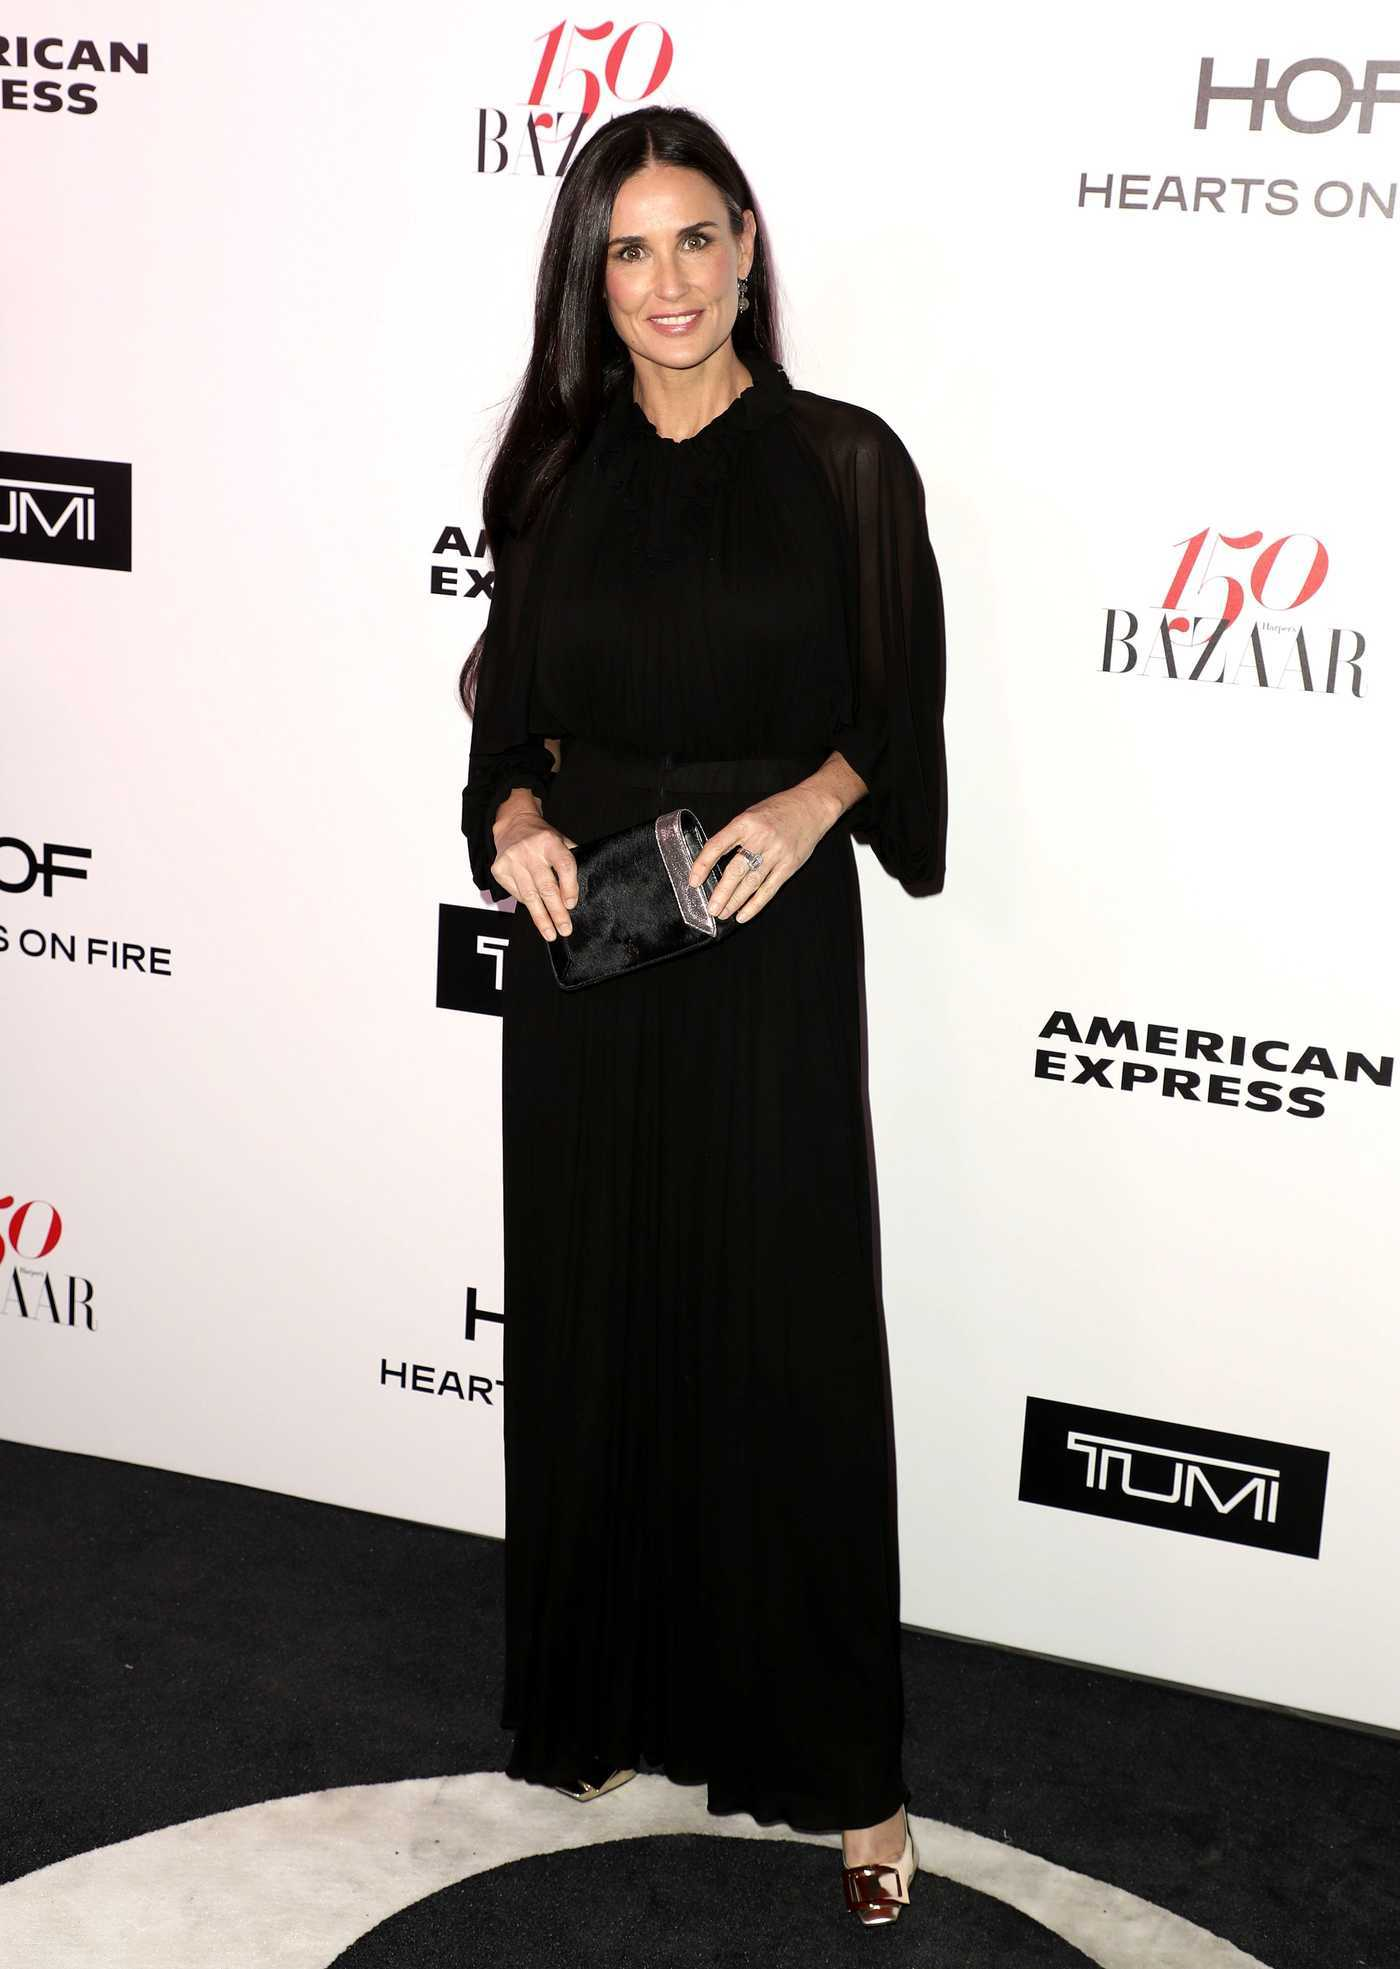 Demi Moore at the Harper's BAZAAR Celebration of the 150 Most Fashionable Women in West Hollywood 01/27/2017